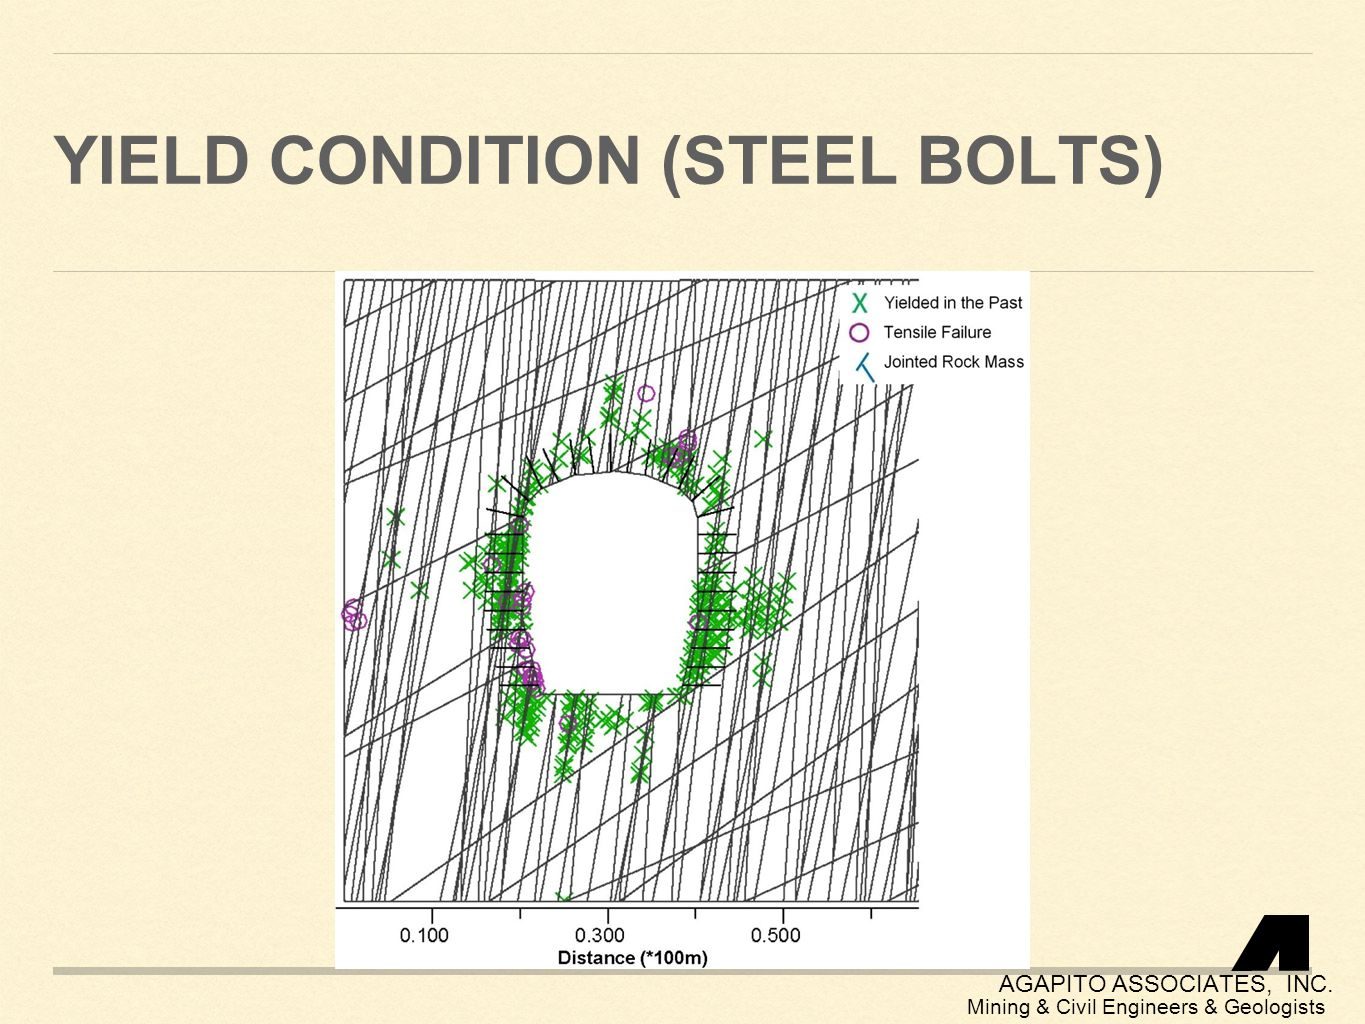 Yield condition (steel bolts)